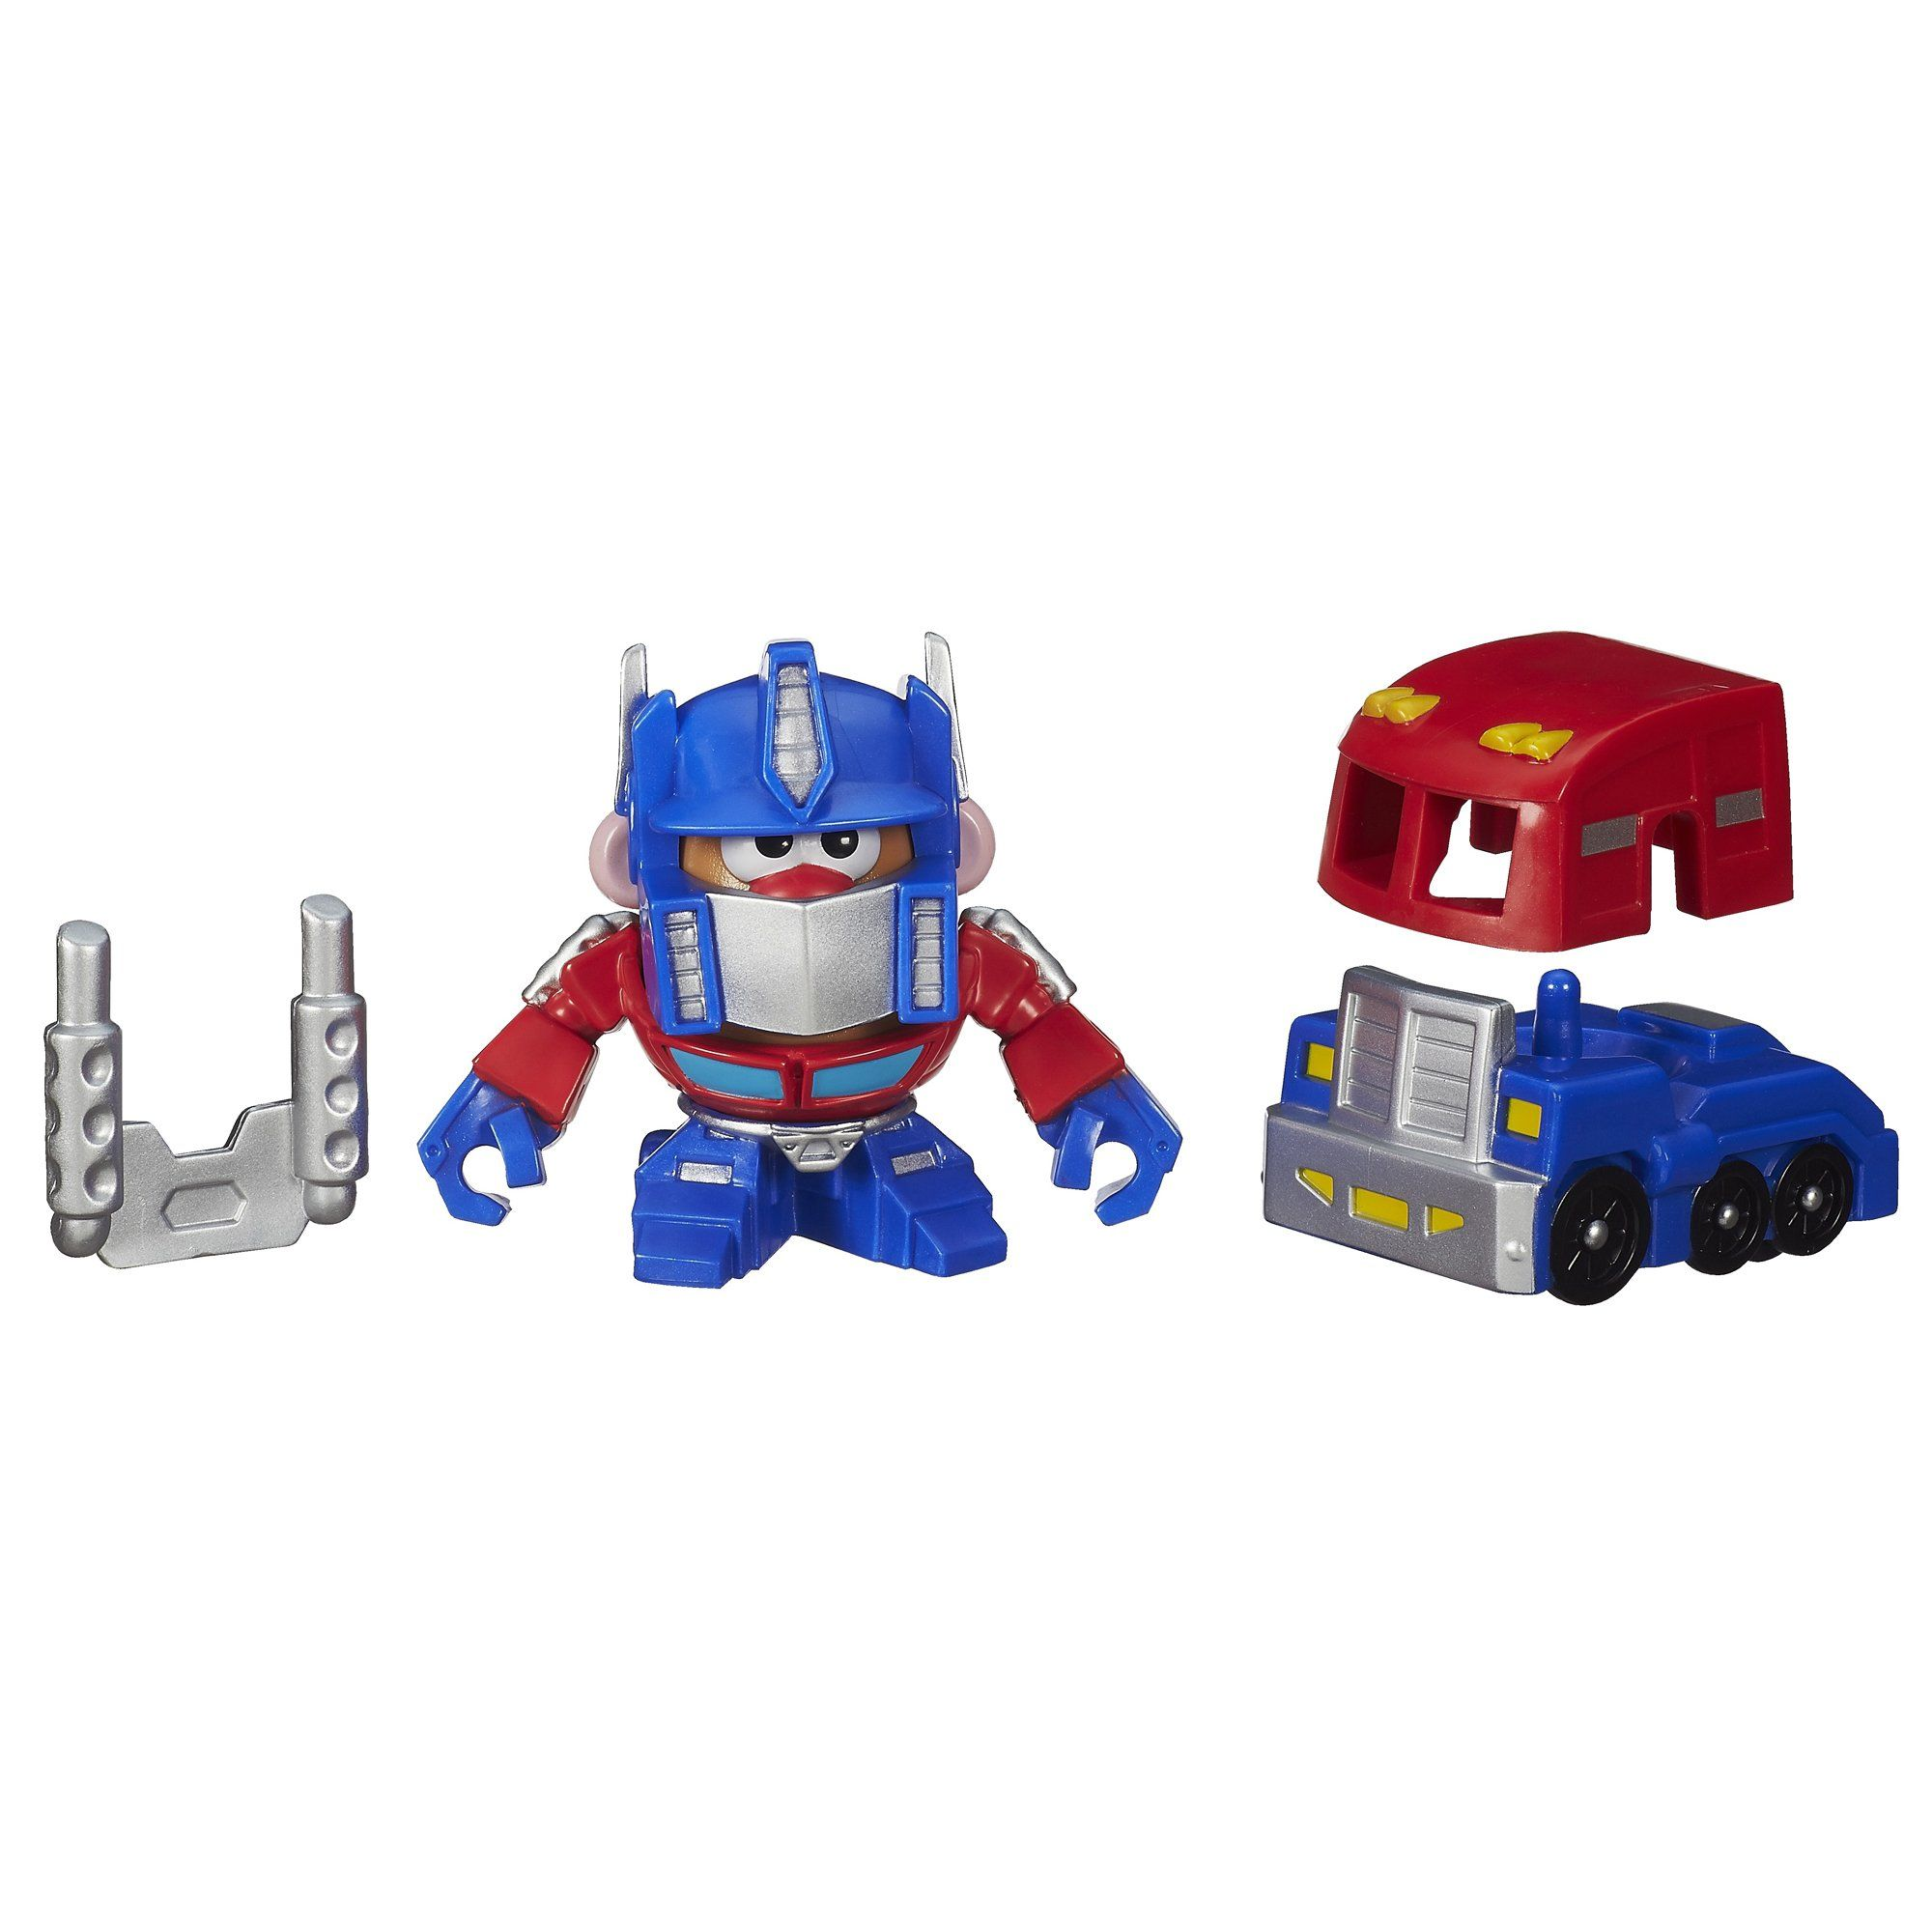 Playskool . Potato Head Transformers Mixable Mashable